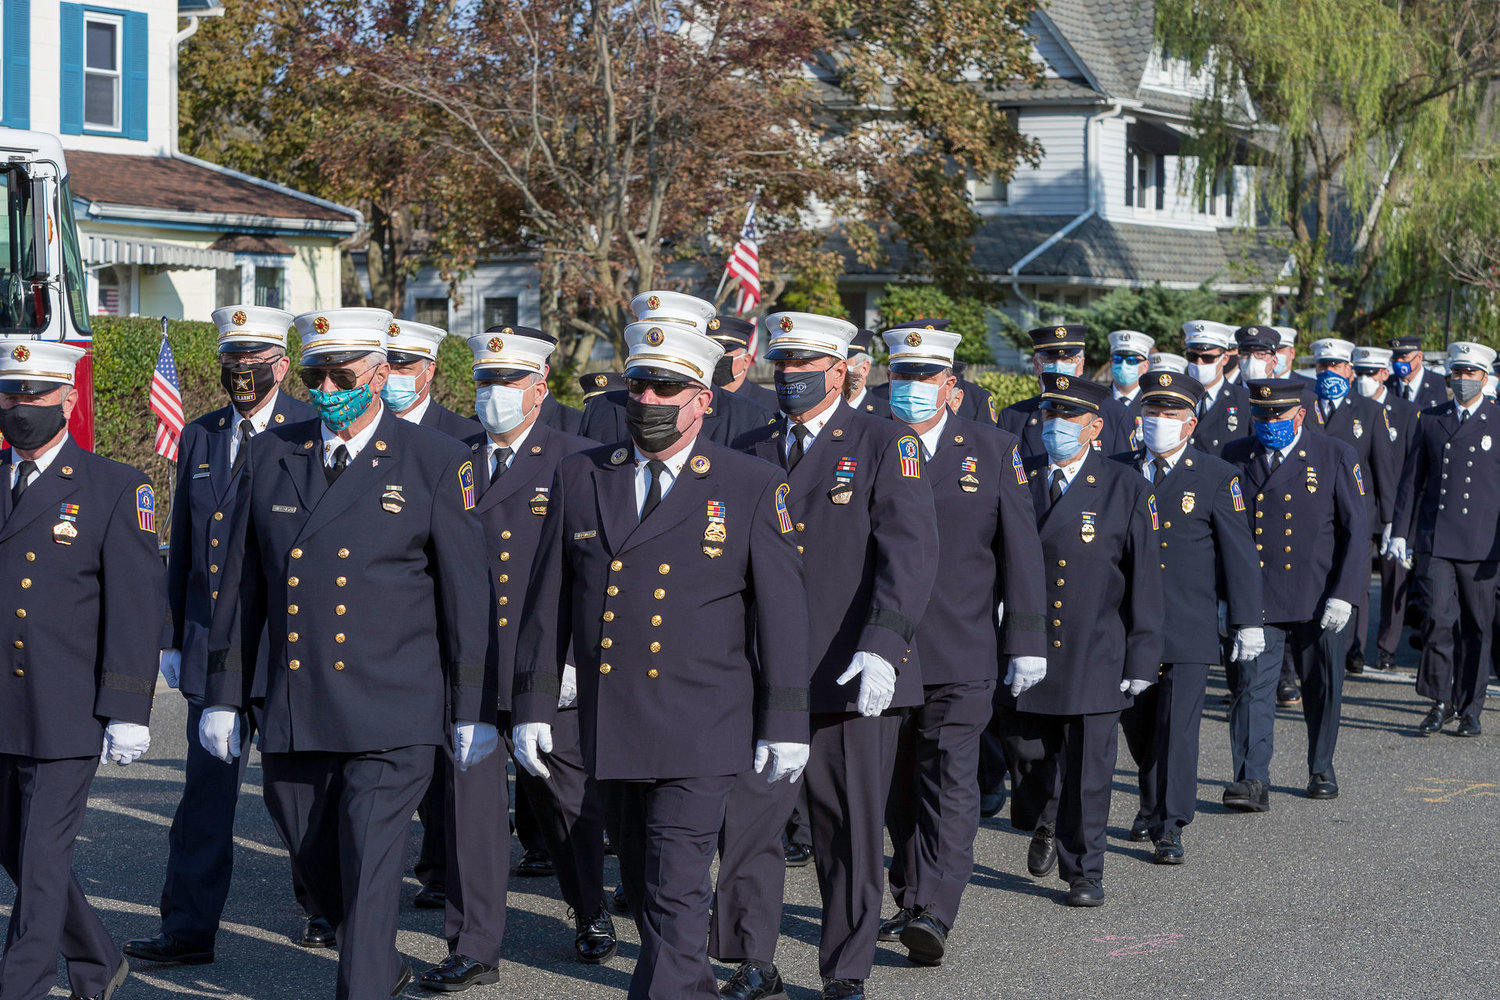 Members of the Rockville Centre Fire Department marched to the ceremony on Sunday.